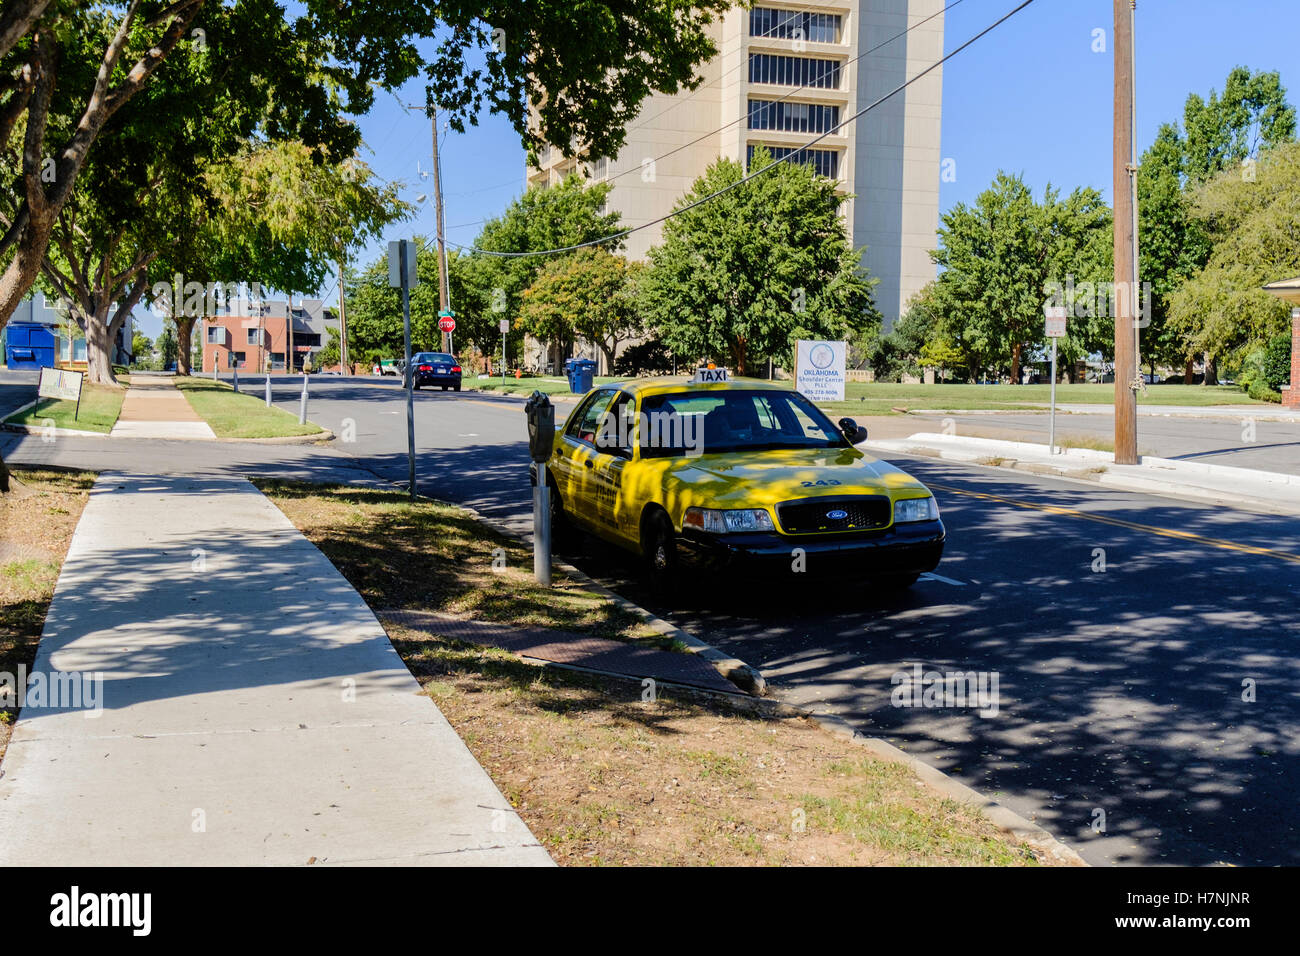 A taxi from Yellow Cab Co. waits for a fare in Oklahoma City, Oklahoma, USA. - Stock Image